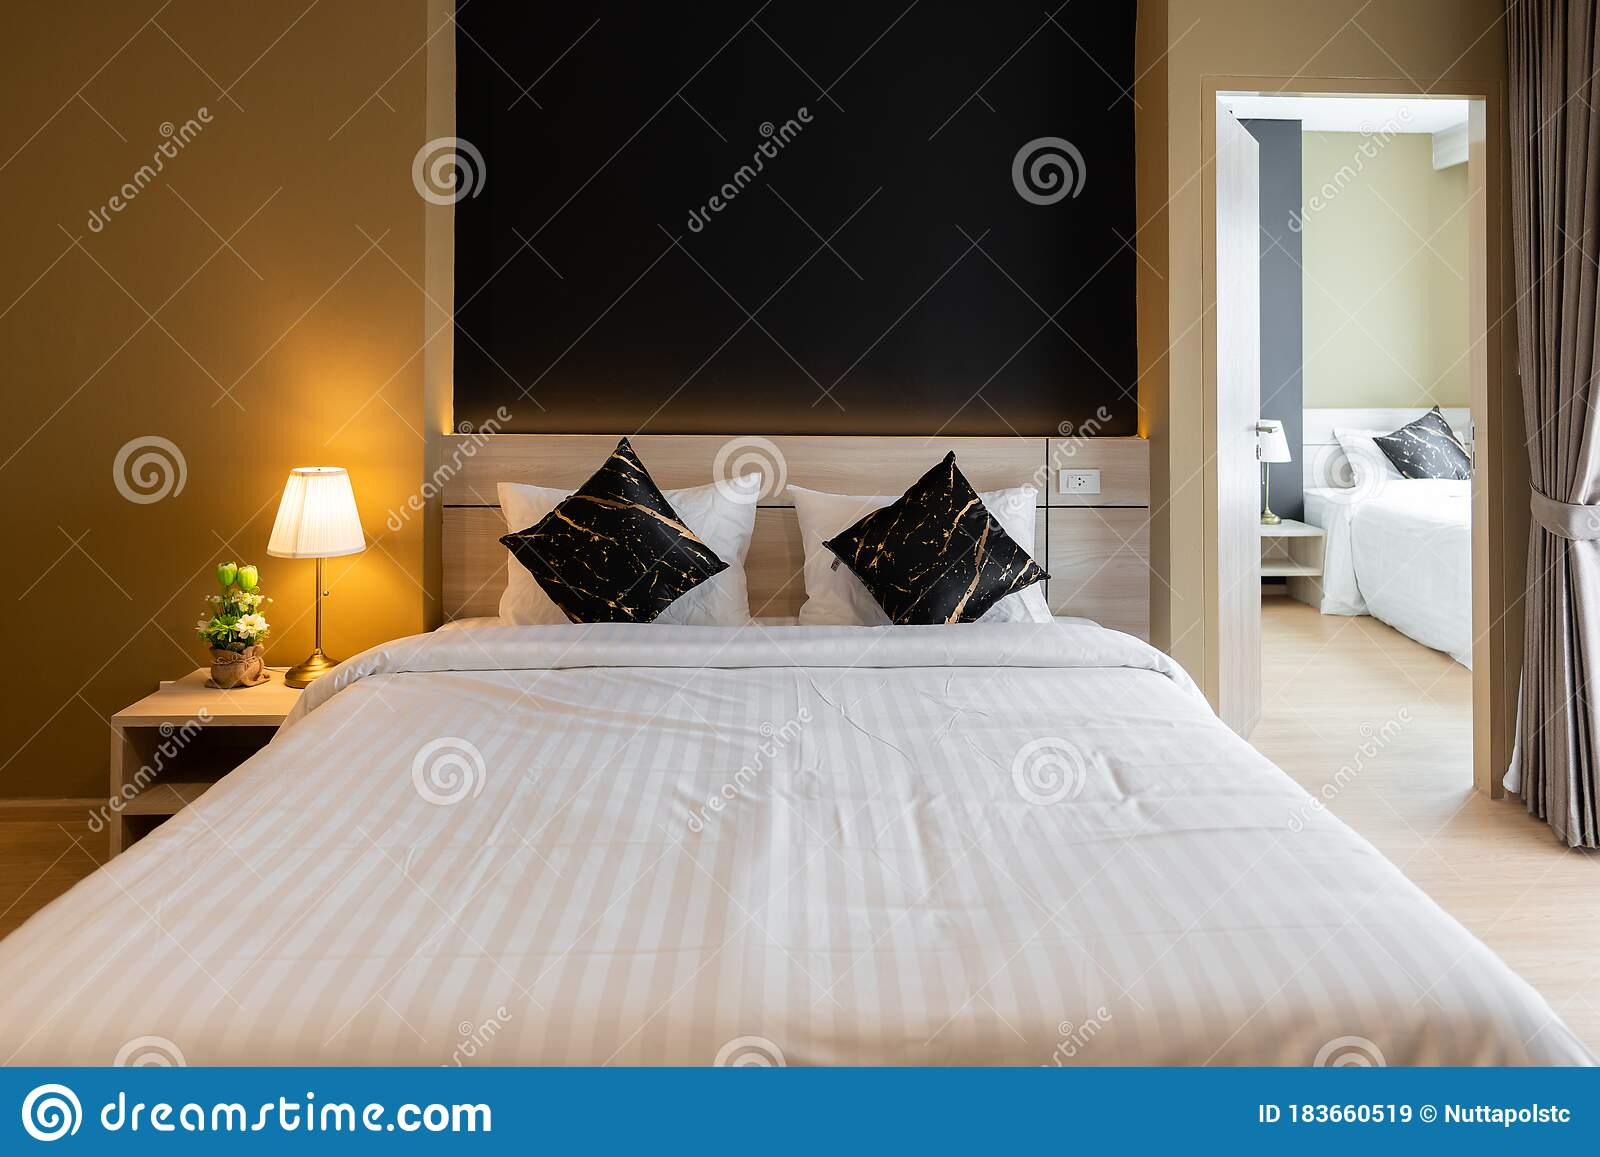 Stylish Bedroom Corner With Wooden Headboard And Bed With Soft Pillows Setting With Navy Blue And Yellow Painted Wall On The Stock Image Image Of Home Decoration 183660519